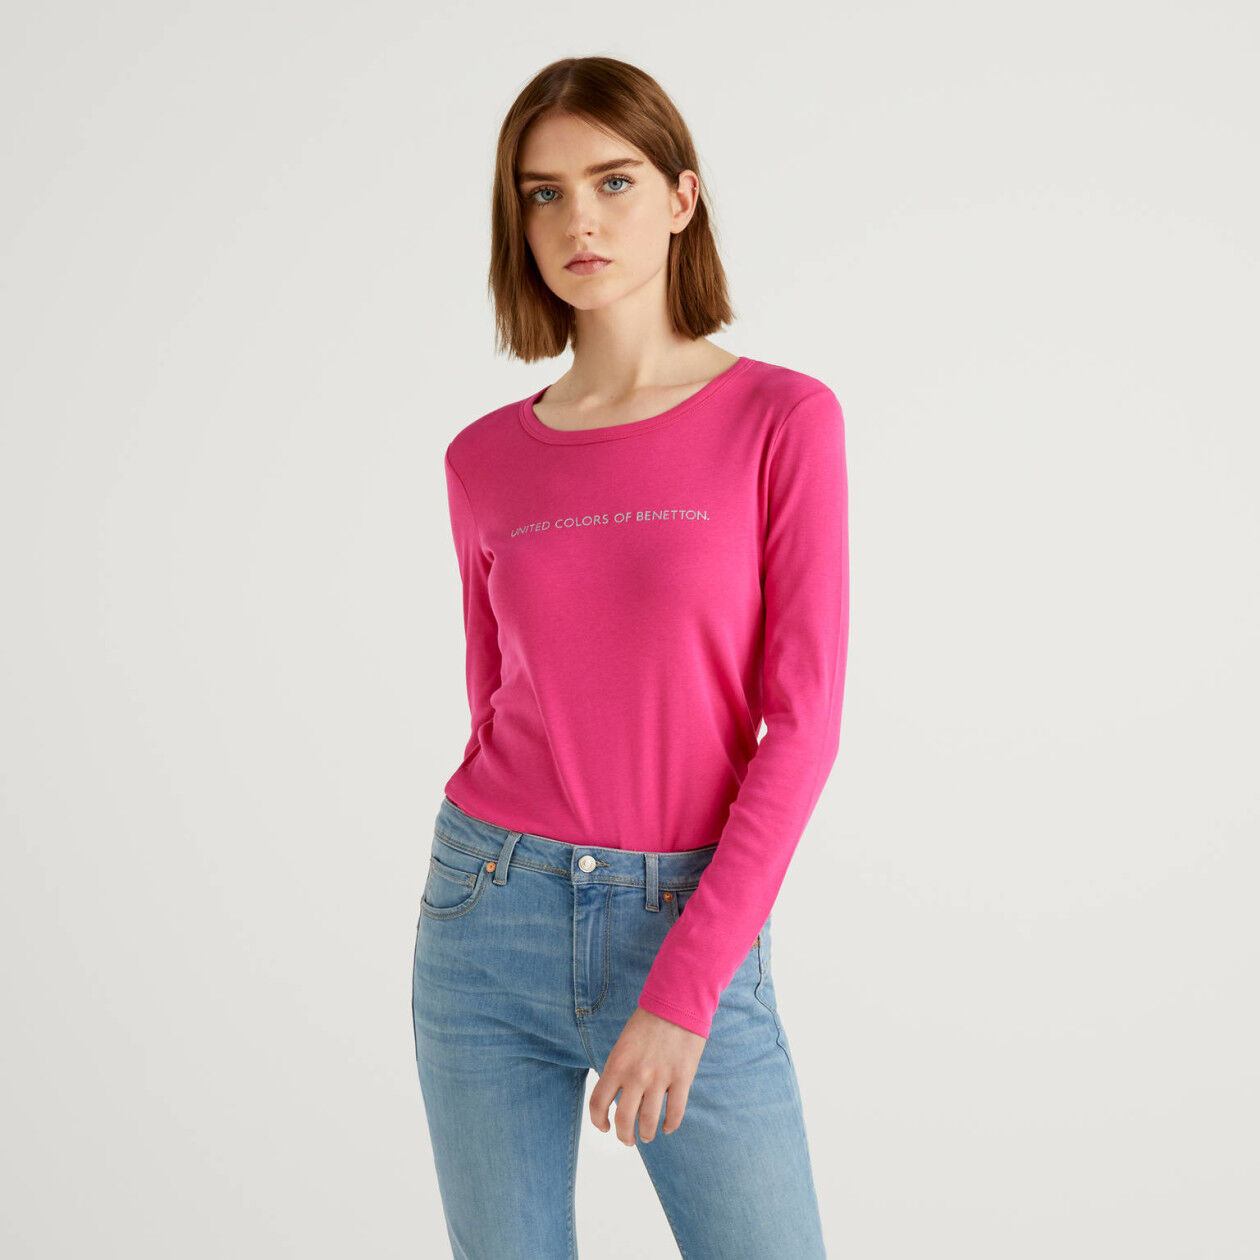 Long sleeve fuchsia t-shirt in 100% cotton